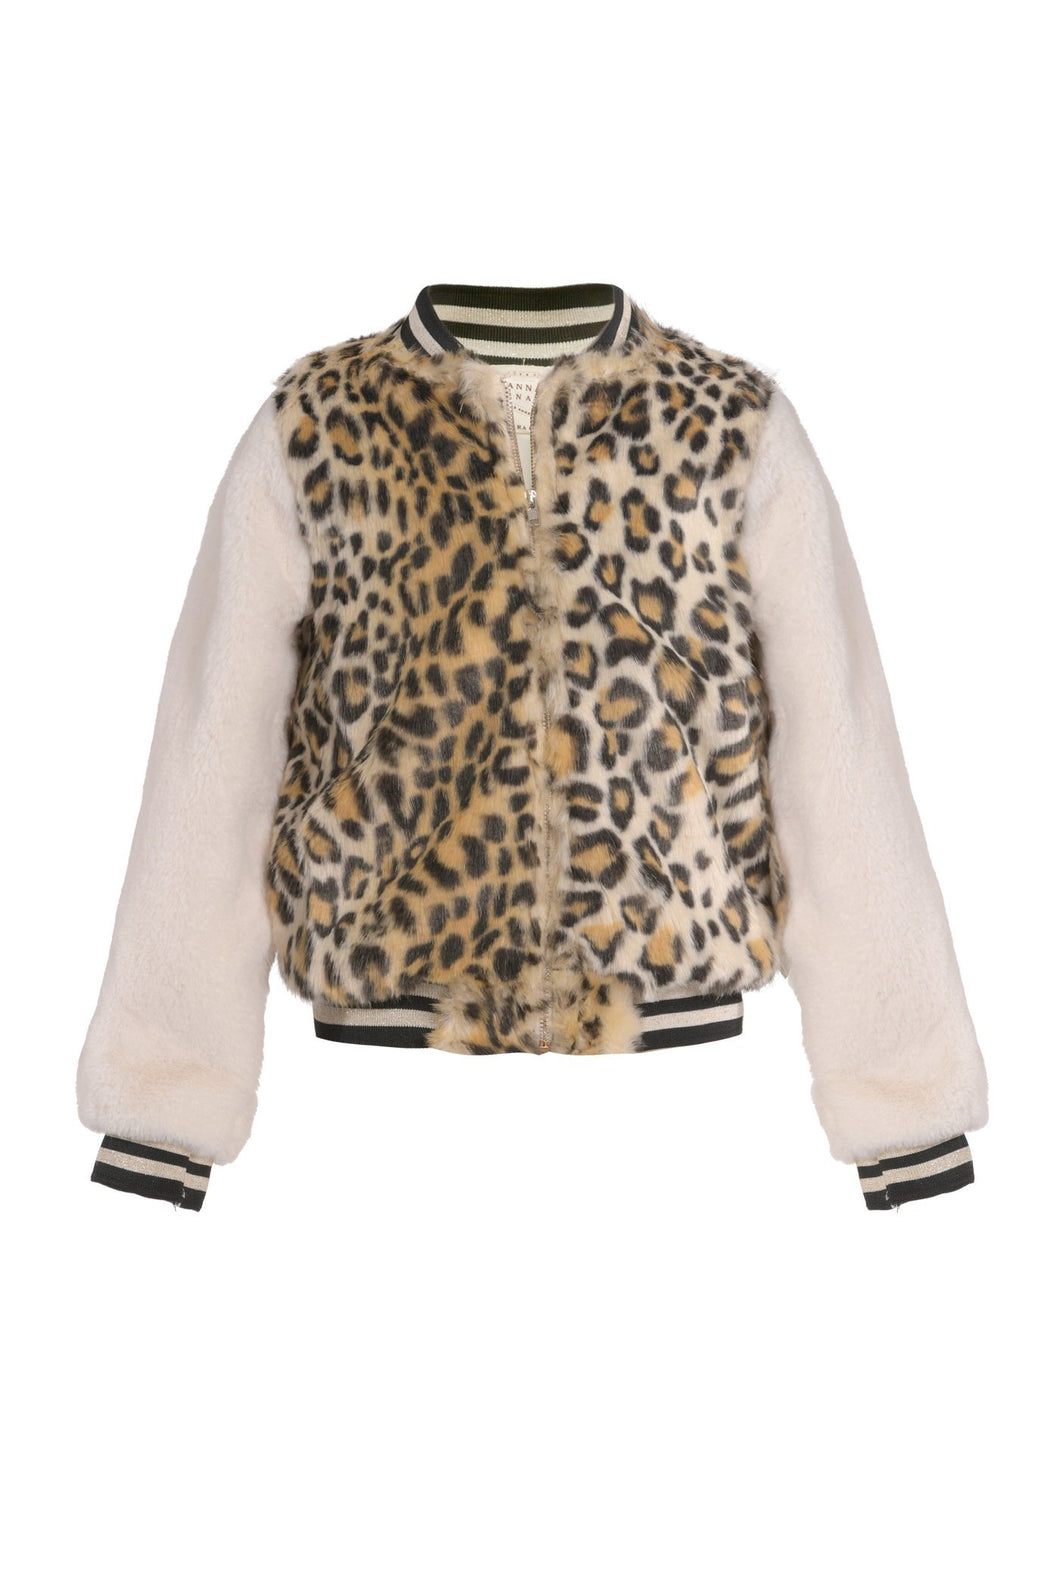 Hannah Banana Animal Print Faux Fur Bomber Jacket